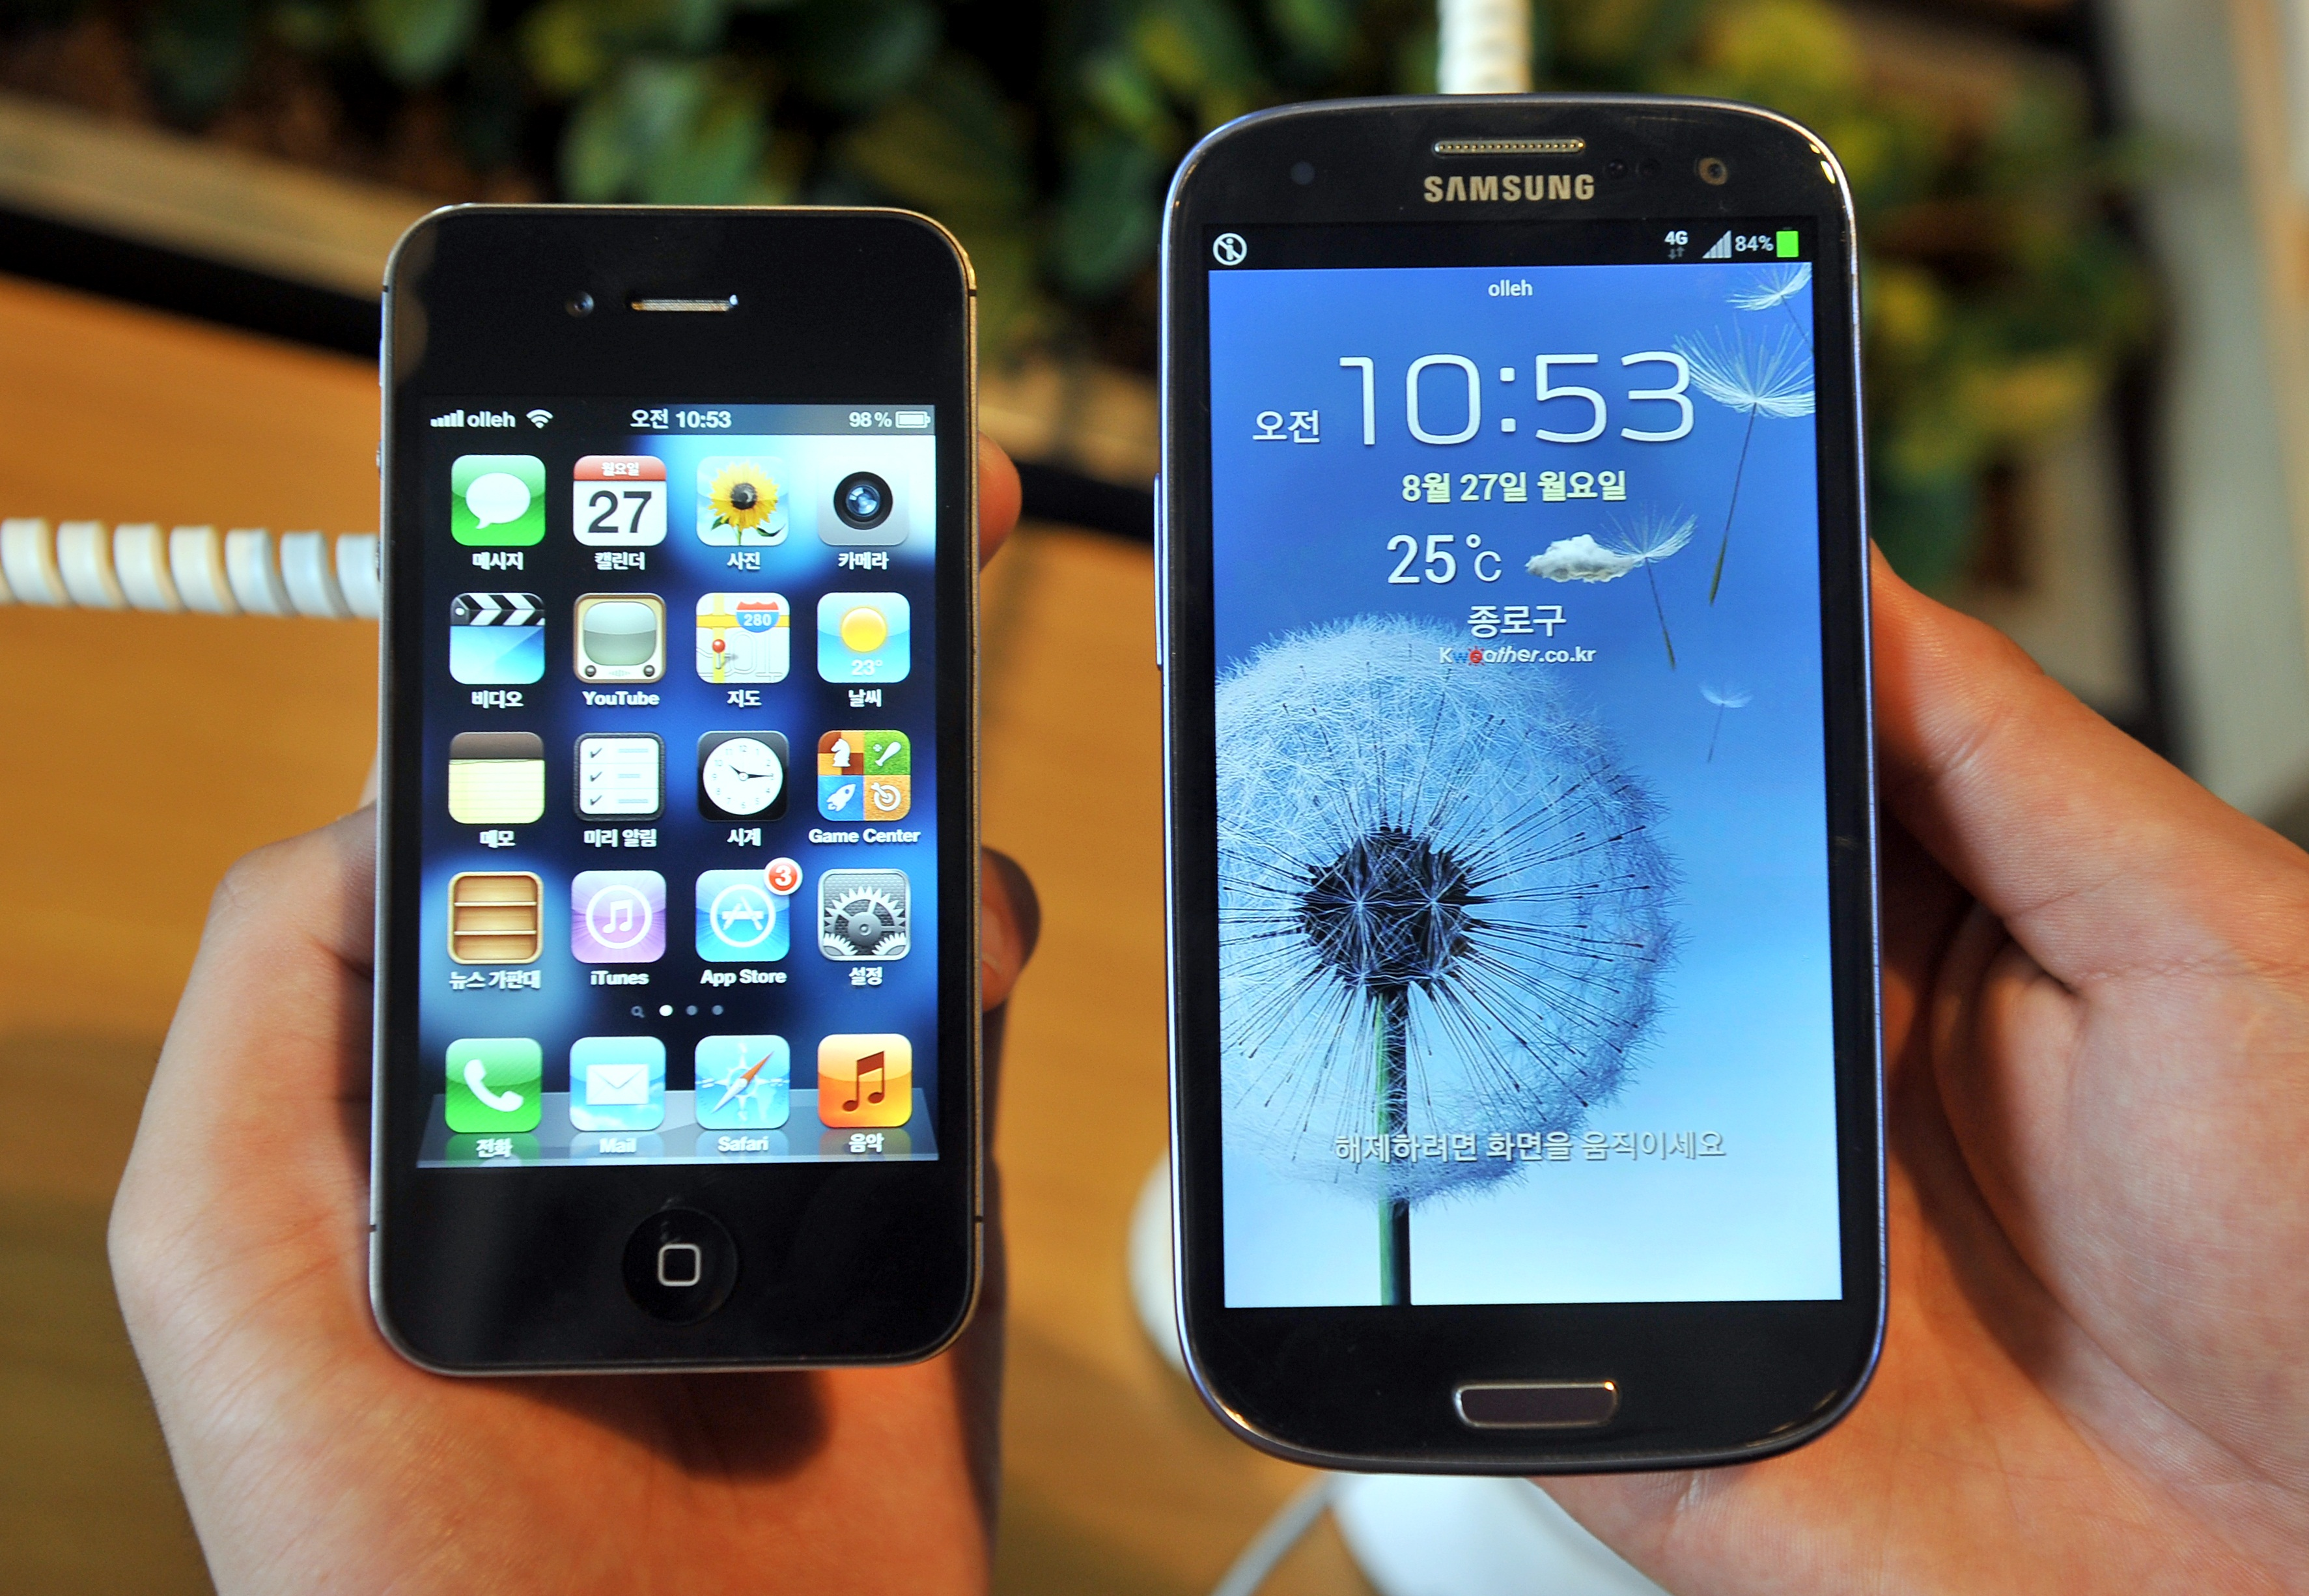 Apple Top US Smartphone Maker, Samsung Second, Android Falls Again